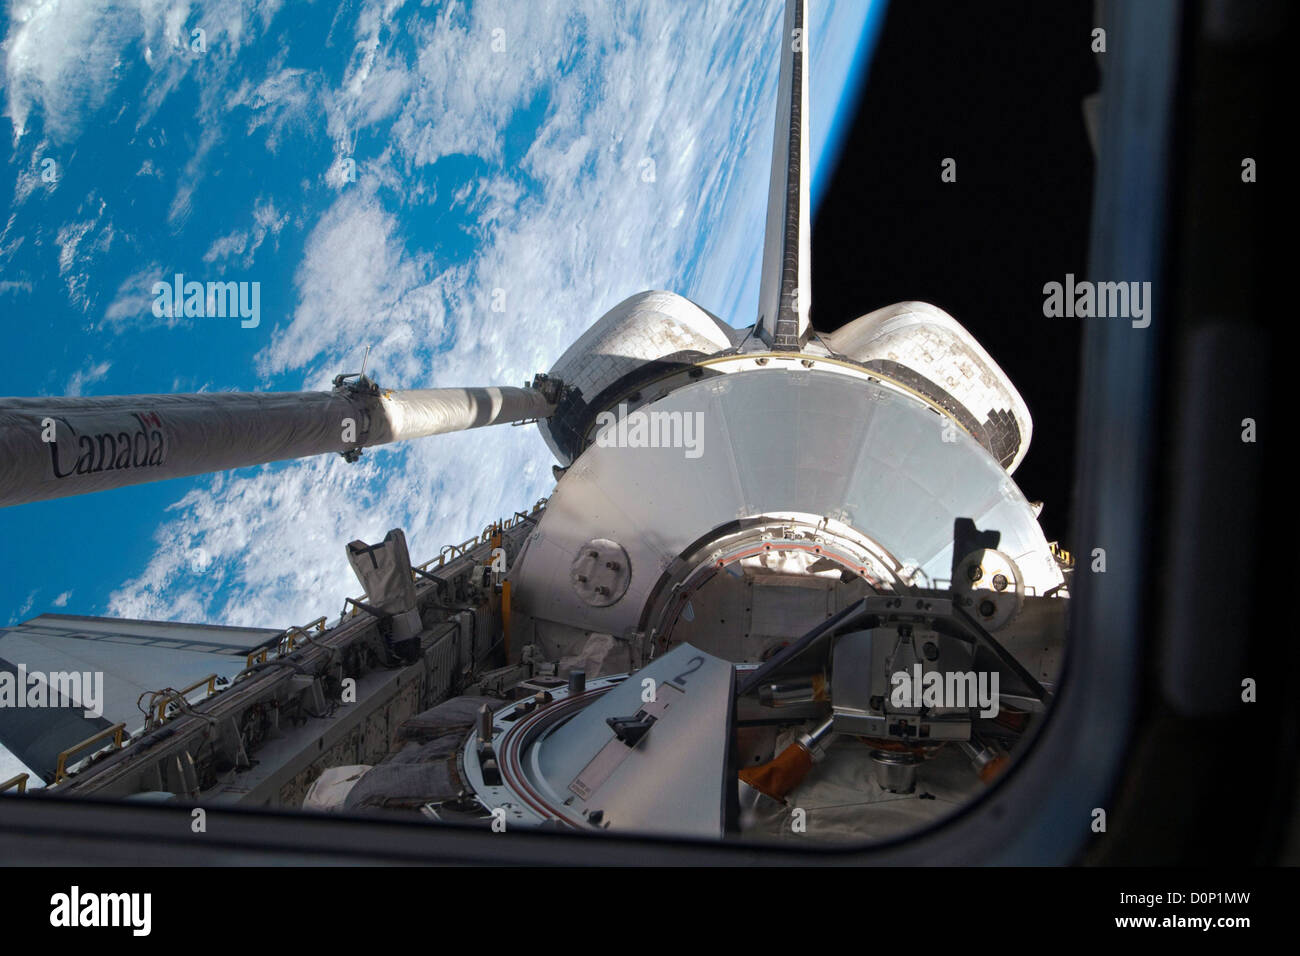 Leonardo Module in Shuttle Payload Bay - Stock Image